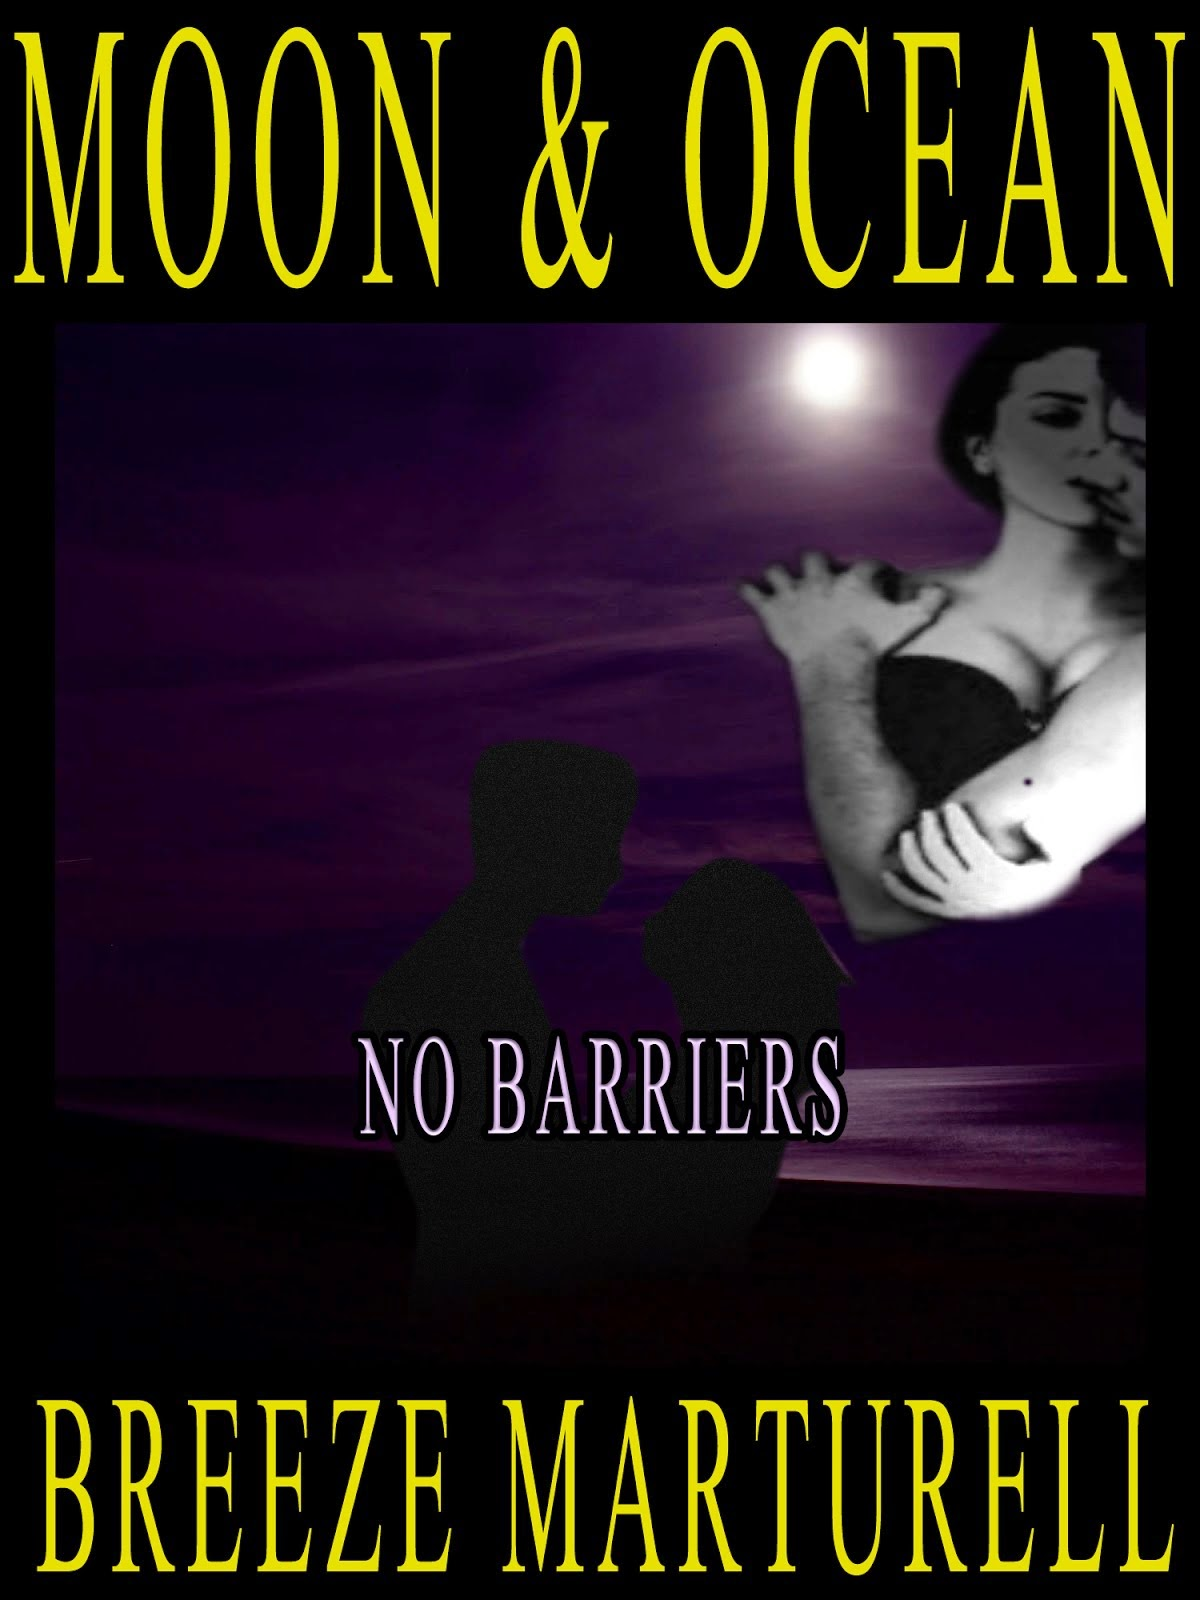 Moon & Ocean No Barriers